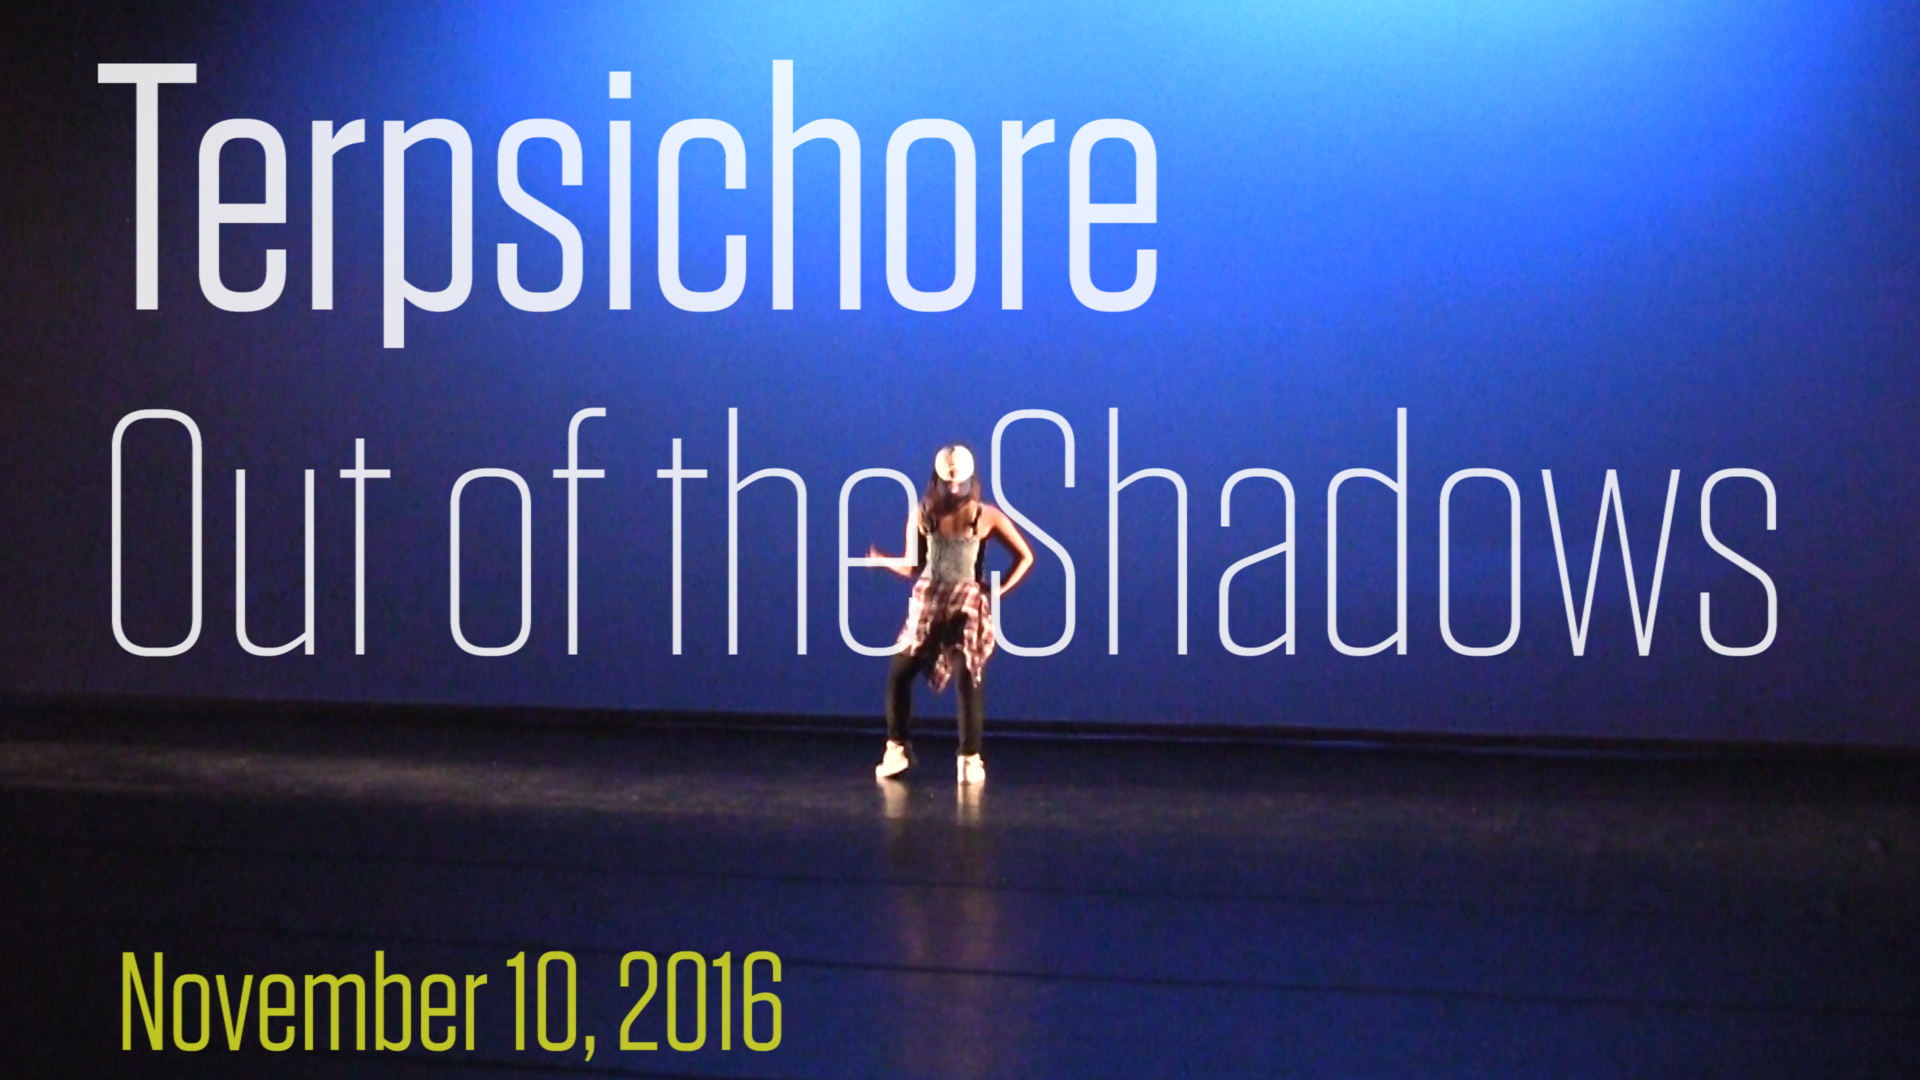 Knox College Terpsichore Dance Collective Fall Performance